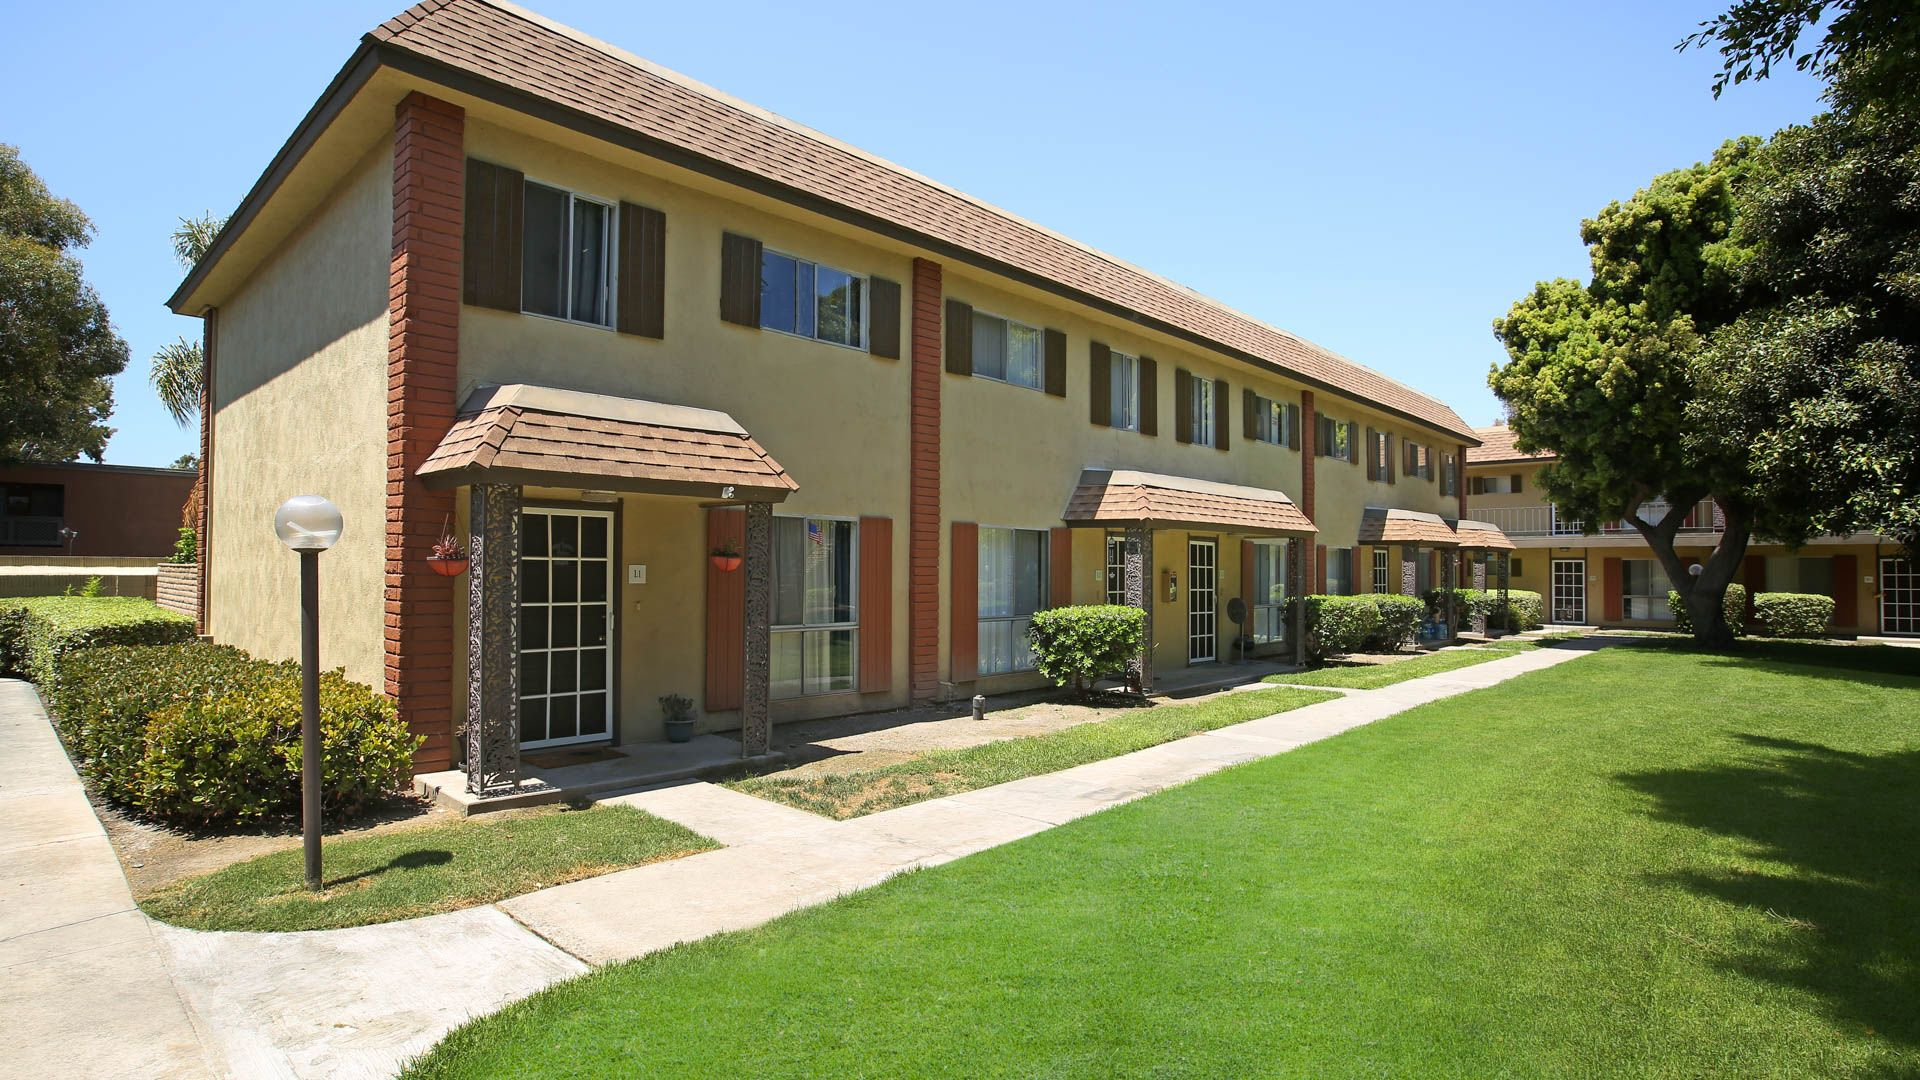 Regency Palms Apartments Huntington Beach 6762 Warner Avenue